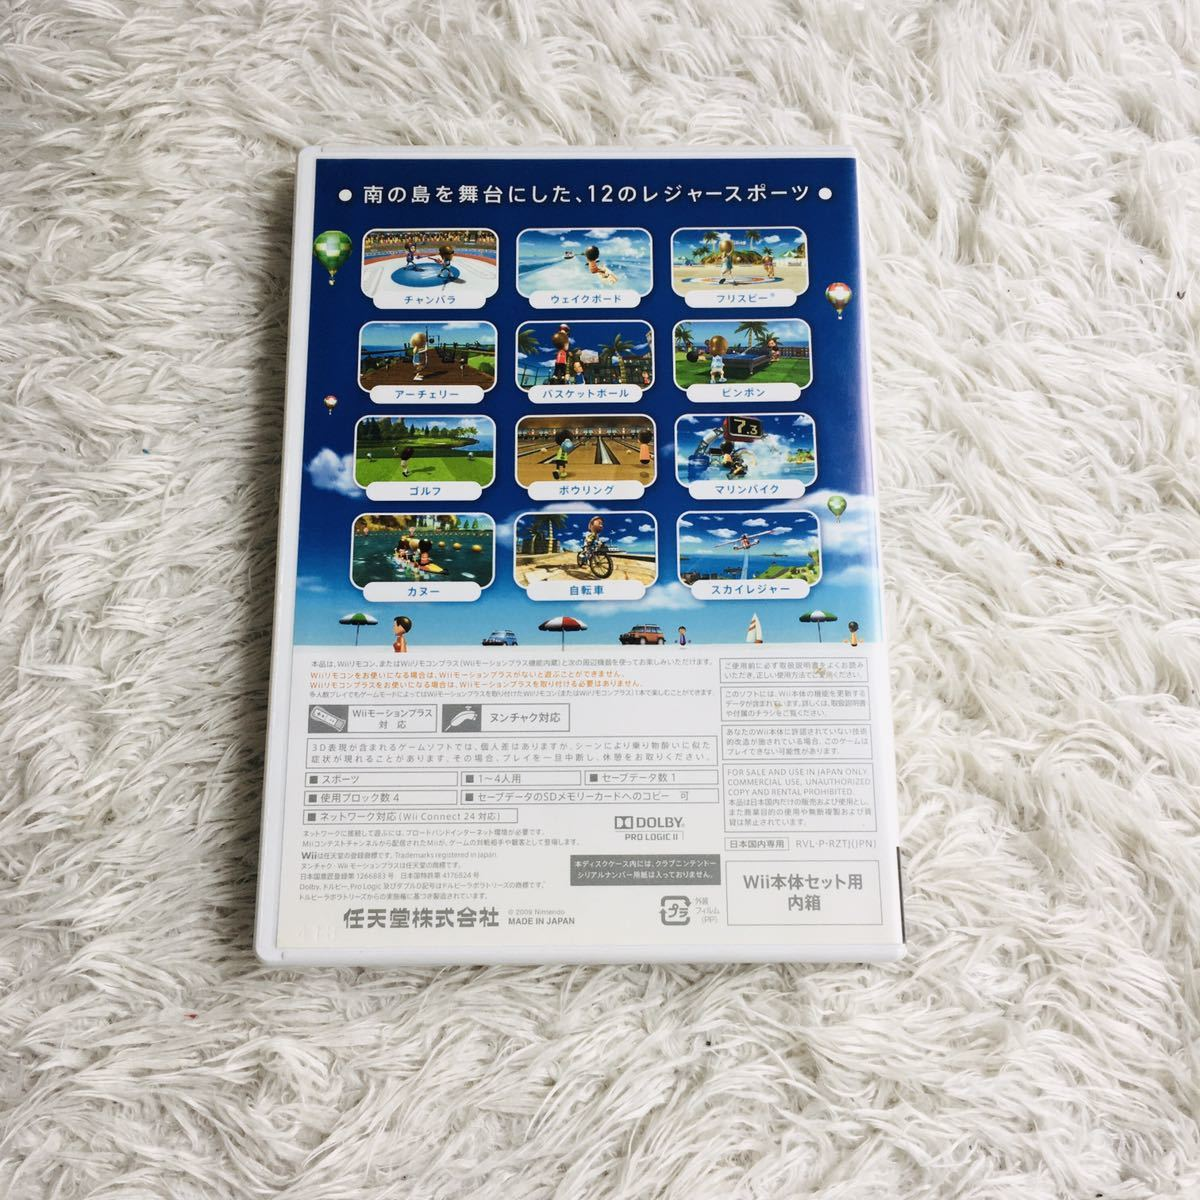 wii 本体 リモコンプラス wiiリゾート ソフトセット 任天堂 クロ